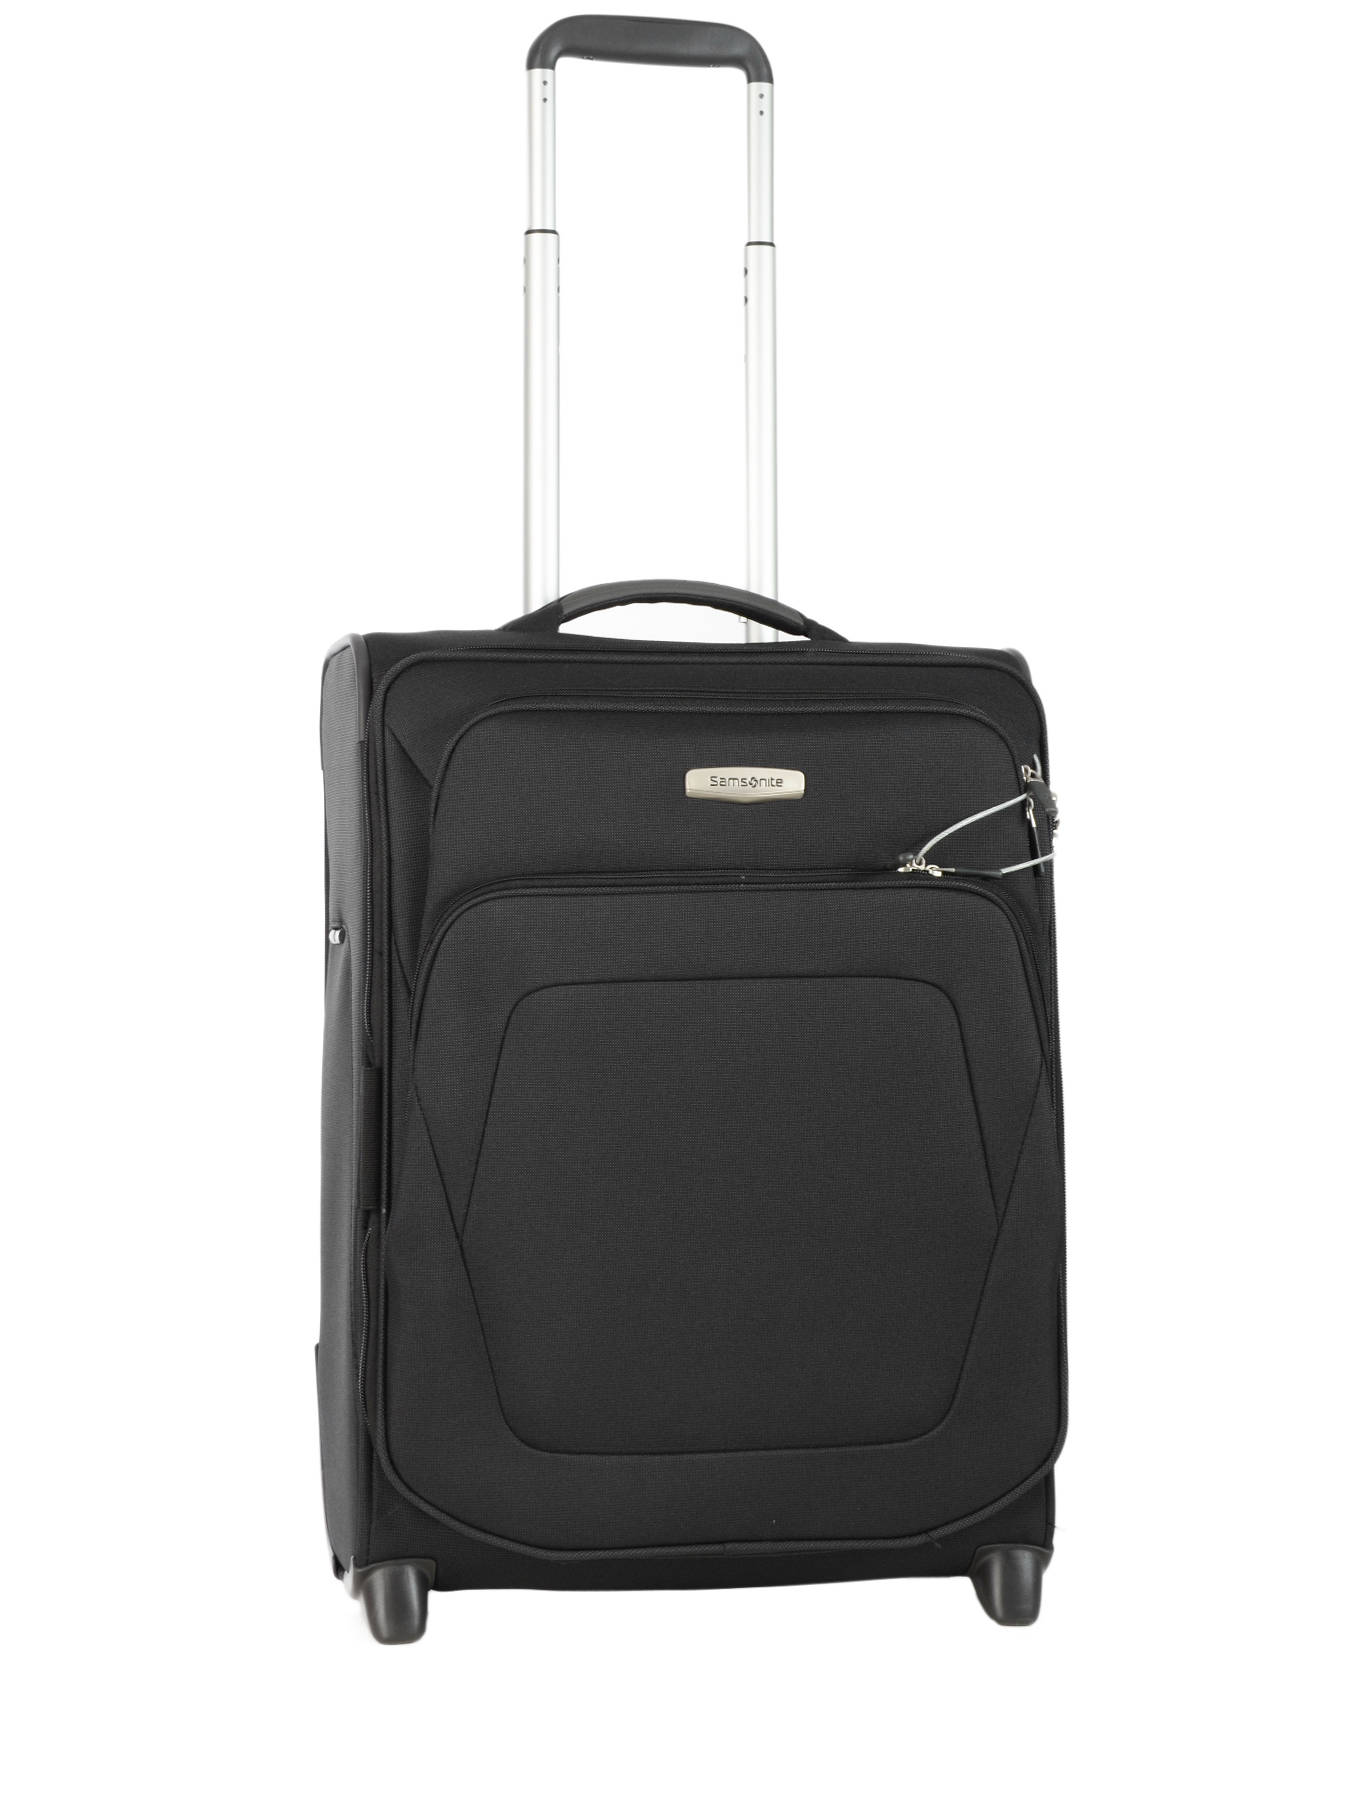 Samsonite carry on suitcase spark sng best prices for Samsonite cabin luggage